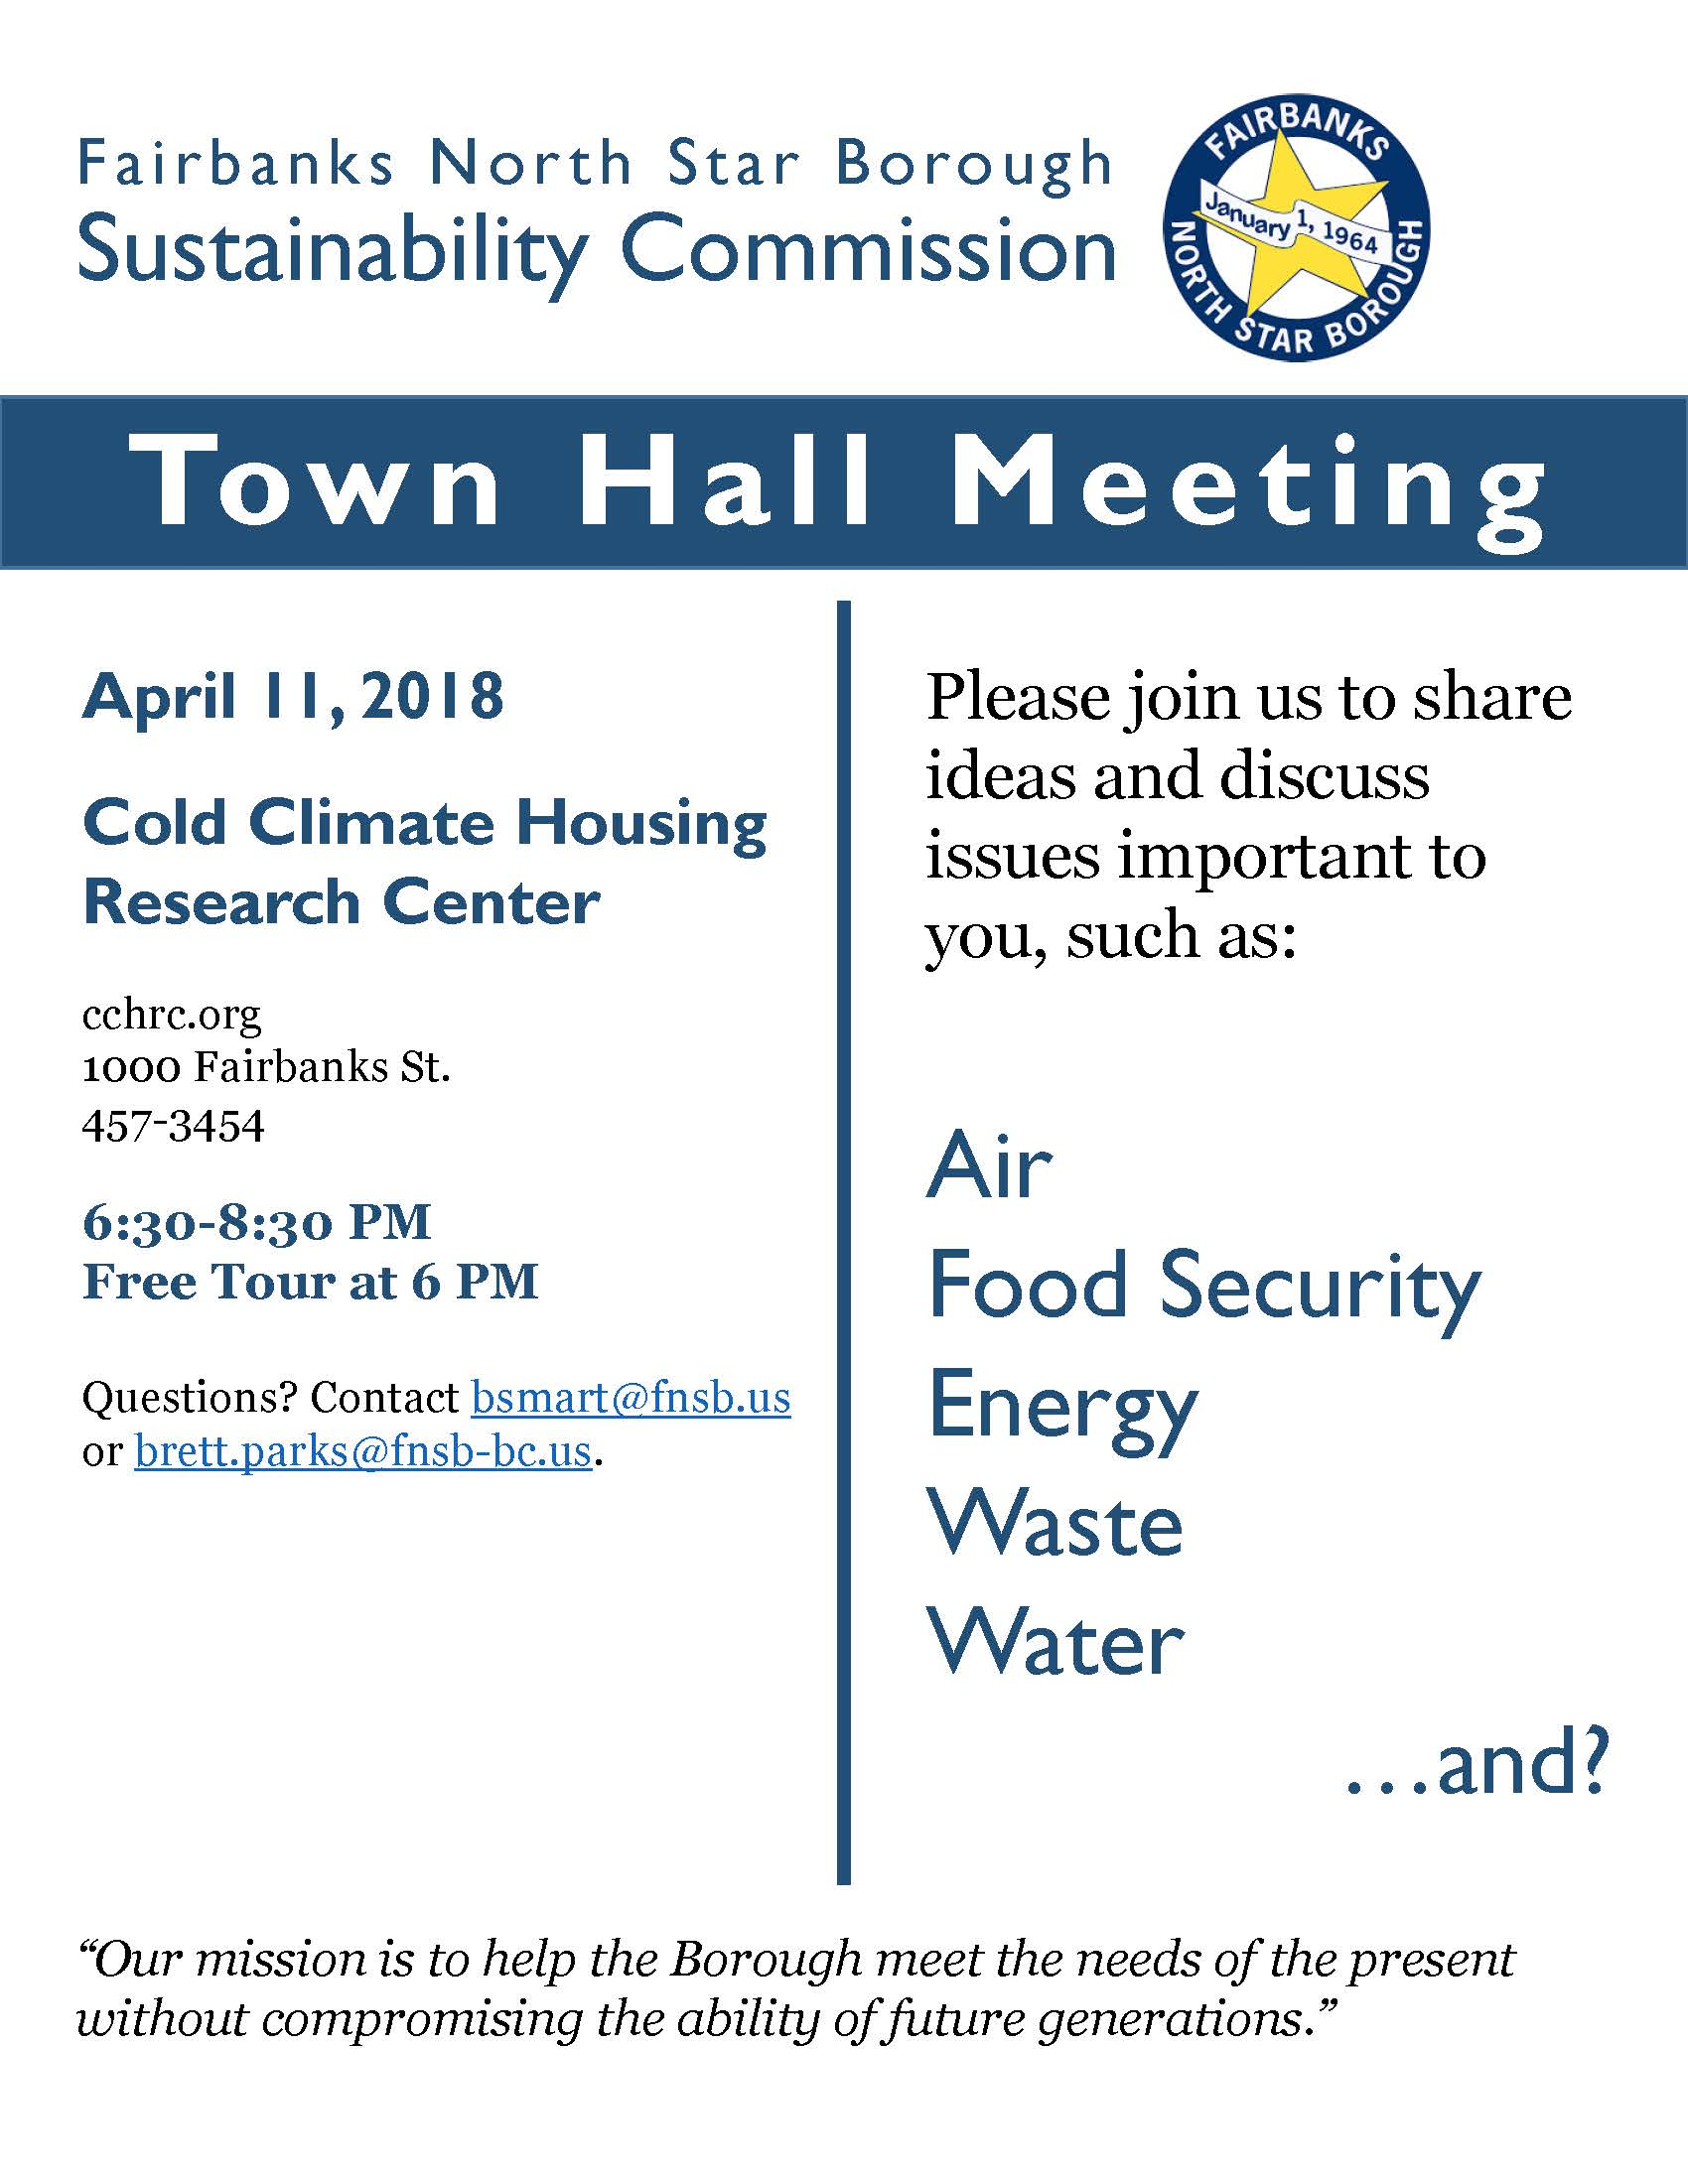 Sustainability Commission Town Hall Flyer.jpg